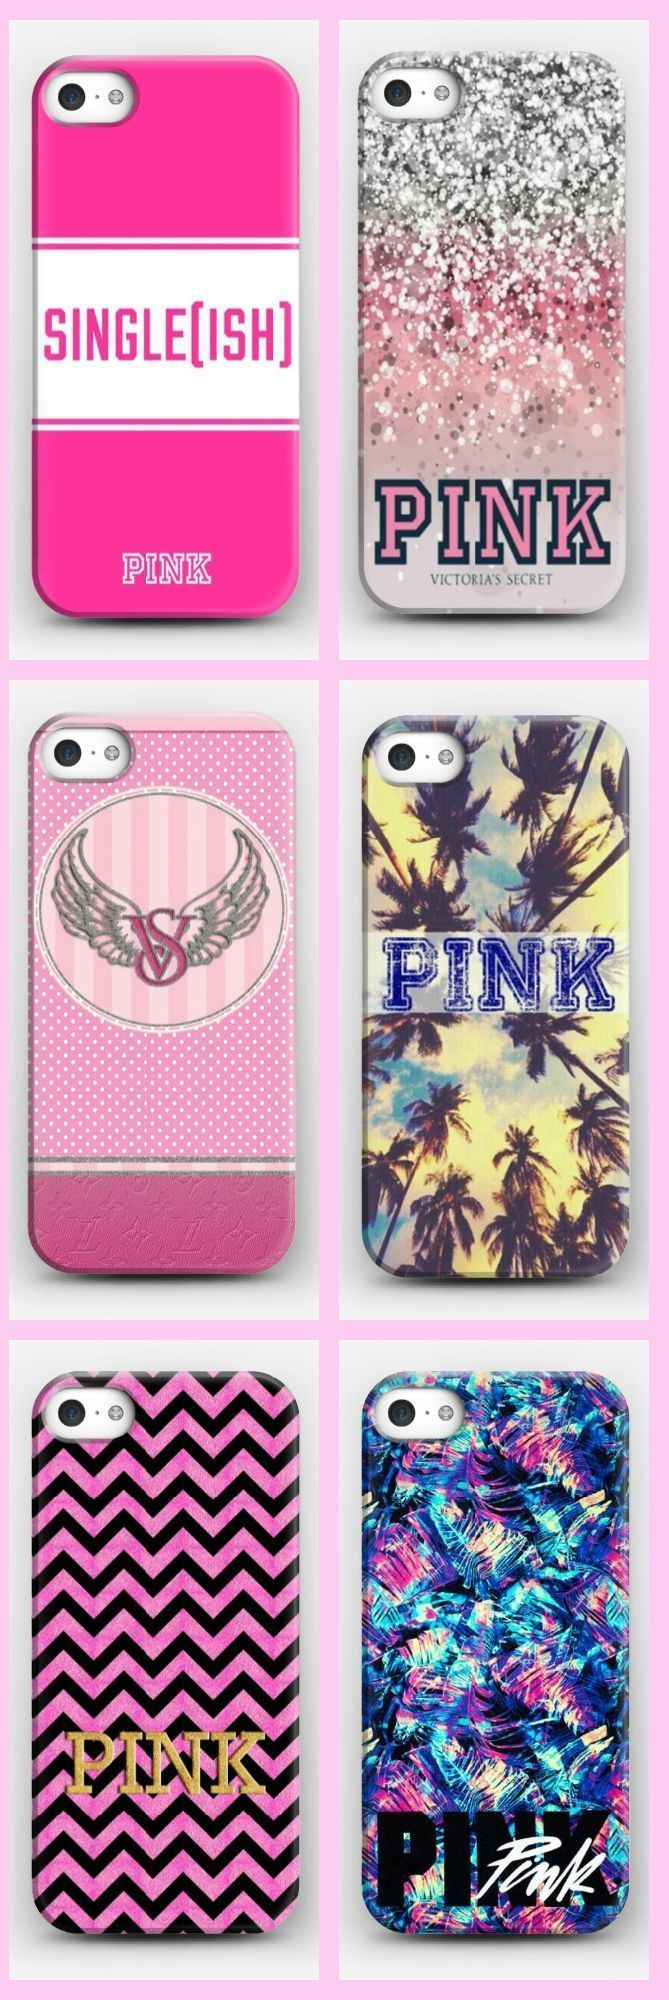 Victoria's Secret PINK 1986 PC Hard Case Covers For iPhone 4S 5 5s 5C 6 6S plus #iphone4s,